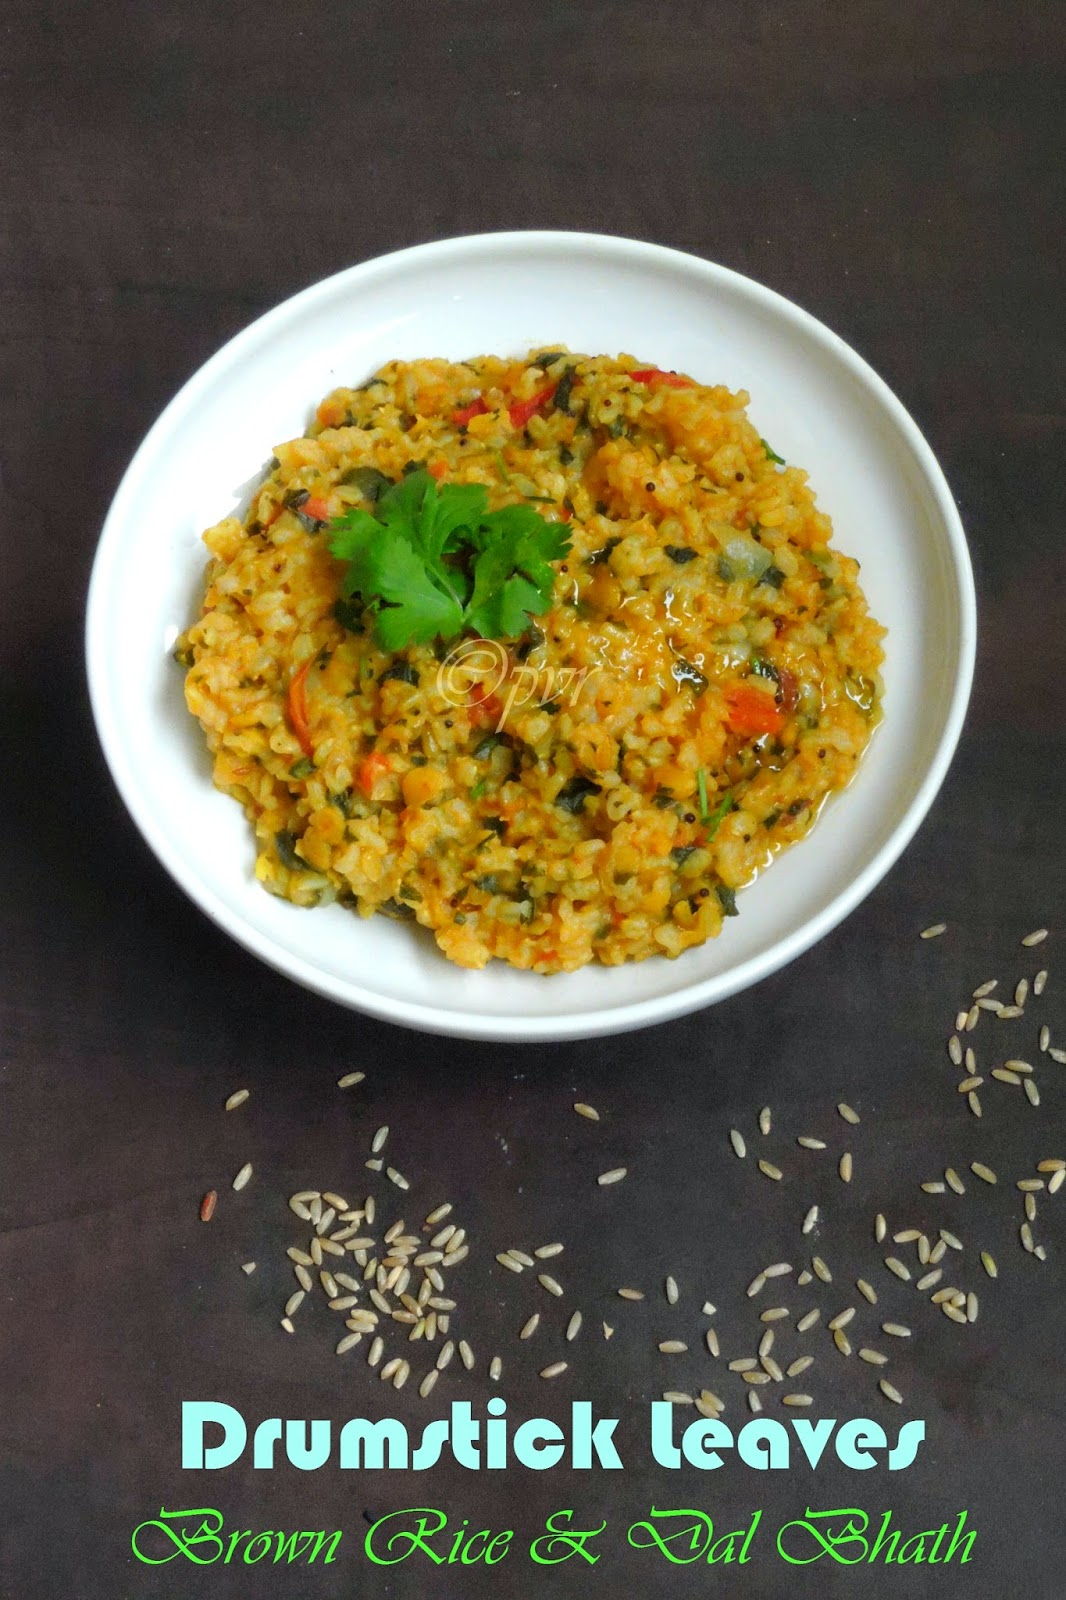 Drumstick leaves Dal Baath, Brown Rice dal bhath